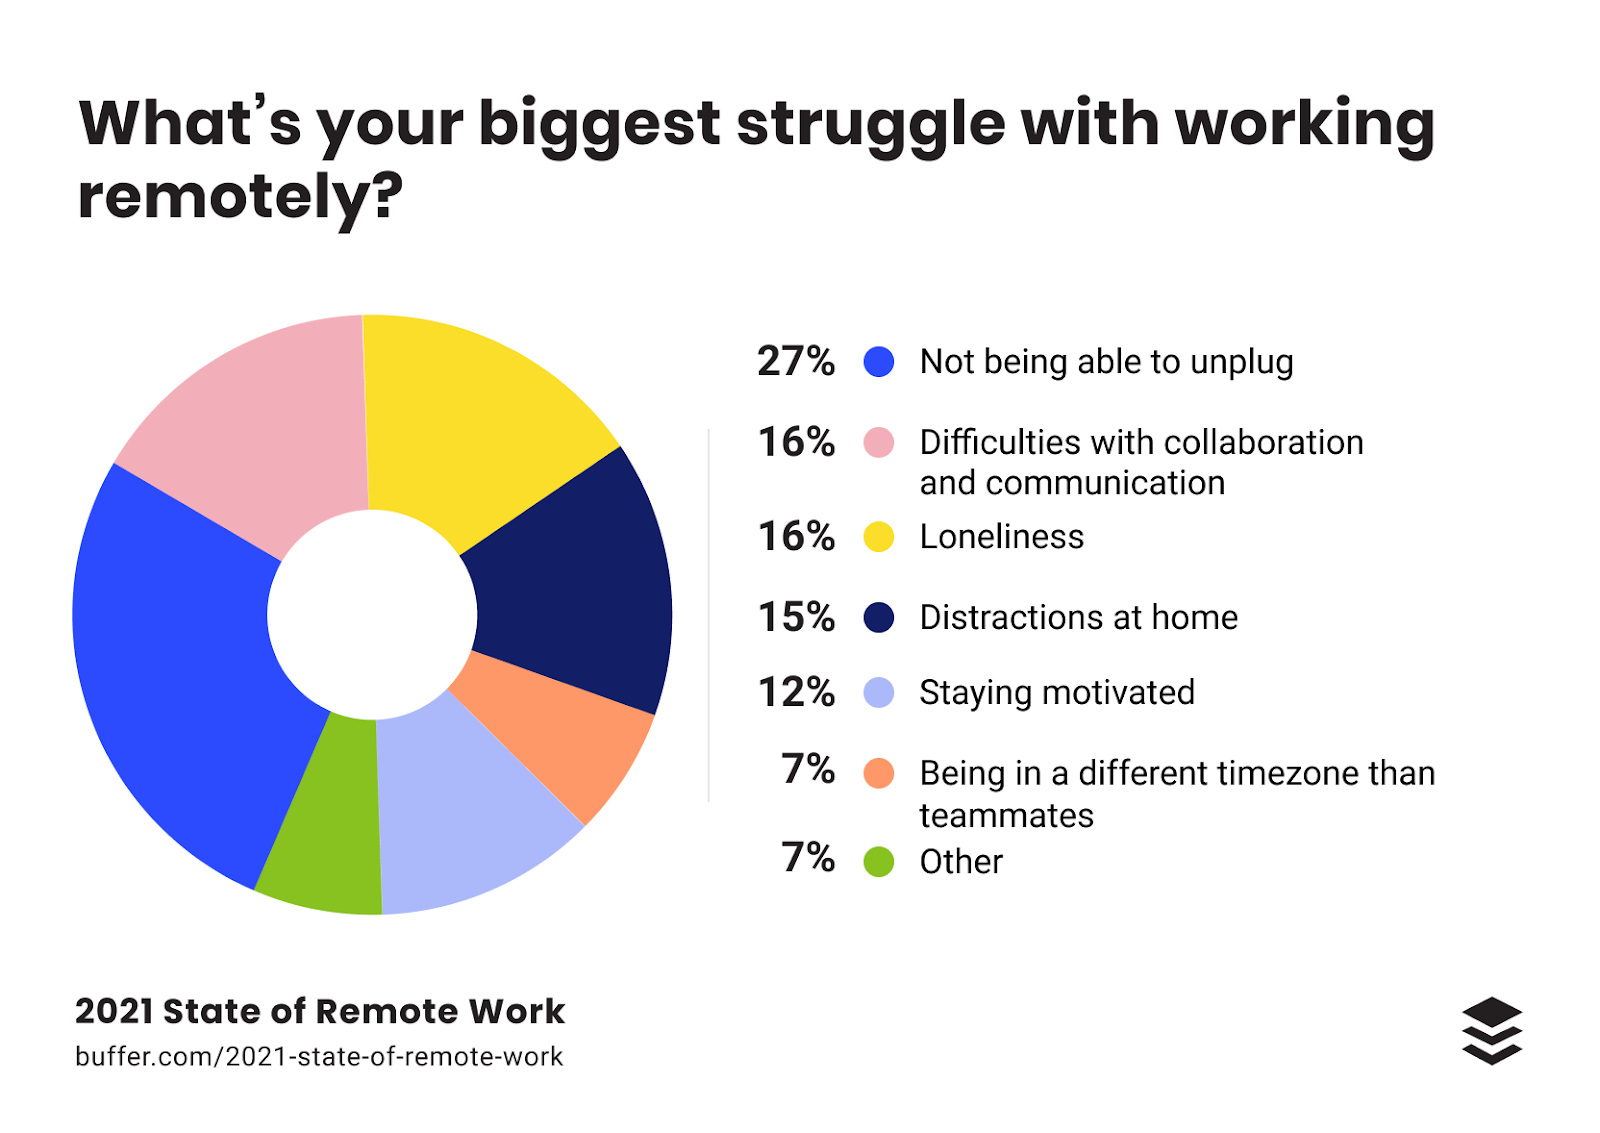 What's your bigger struggle with working remotely? pie chart